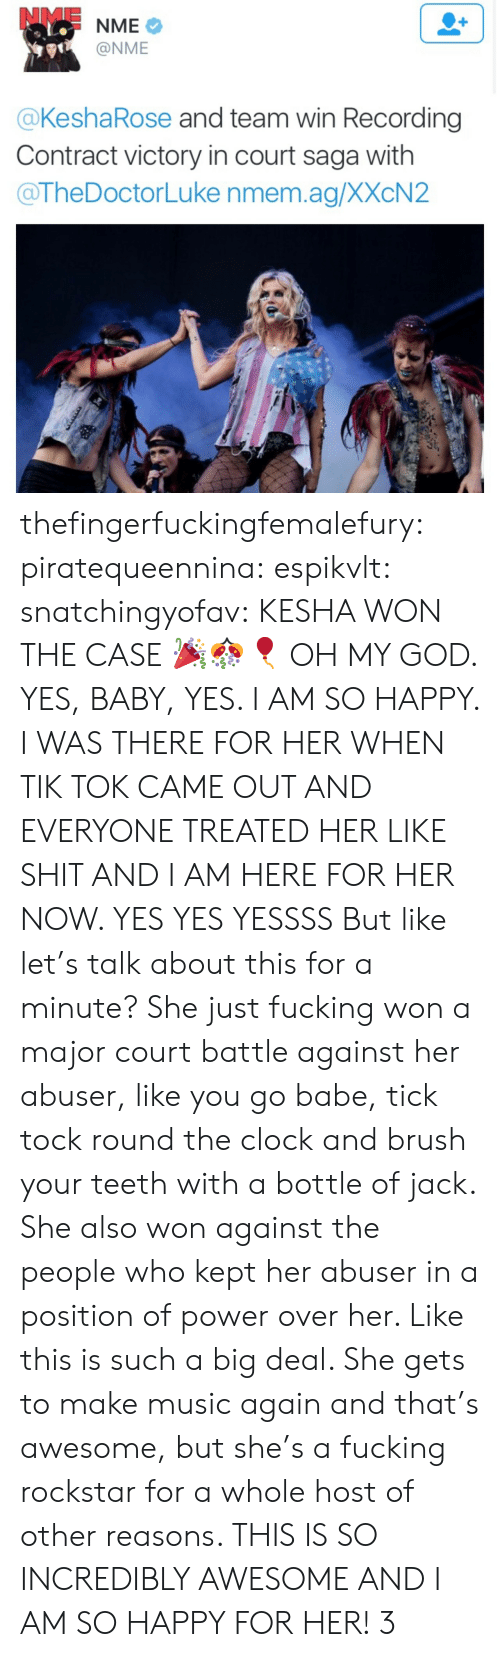 Yes I Am: @NME  @KeshaRose and team win Recording  Contract victory in court saga with  @TheDoctorLuke nmem.ag/XXcN2 thefingerfuckingfemalefury: piratequeennina:  espikvlt:  snatchingyofav:  KESHA WON THE CASE 🎉🎊🎈  OH MY GOD. YES, BABY, YES. I AM SO HAPPY. I WAS THERE FOR HER WHEN TIK TOK CAME OUT AND EVERYONE TREATED HER LIKE SHIT AND I AM HERE FOR HER NOW. YES YES YESSSS  But like let's talk about this for a minute? She just fucking won a major court battle against her abuser, like you go babe, tick tock round the clock and brush your teeth with a bottle of jack. She also won against the people who kept her abuser in a position of power over her. Like this is such a big deal. She gets to make music again and that's awesome, but she's a fucking rockstar for a whole host of other reasons.   THIS IS SO INCREDIBLY AWESOME AND I AM SO HAPPY FOR HER! 3